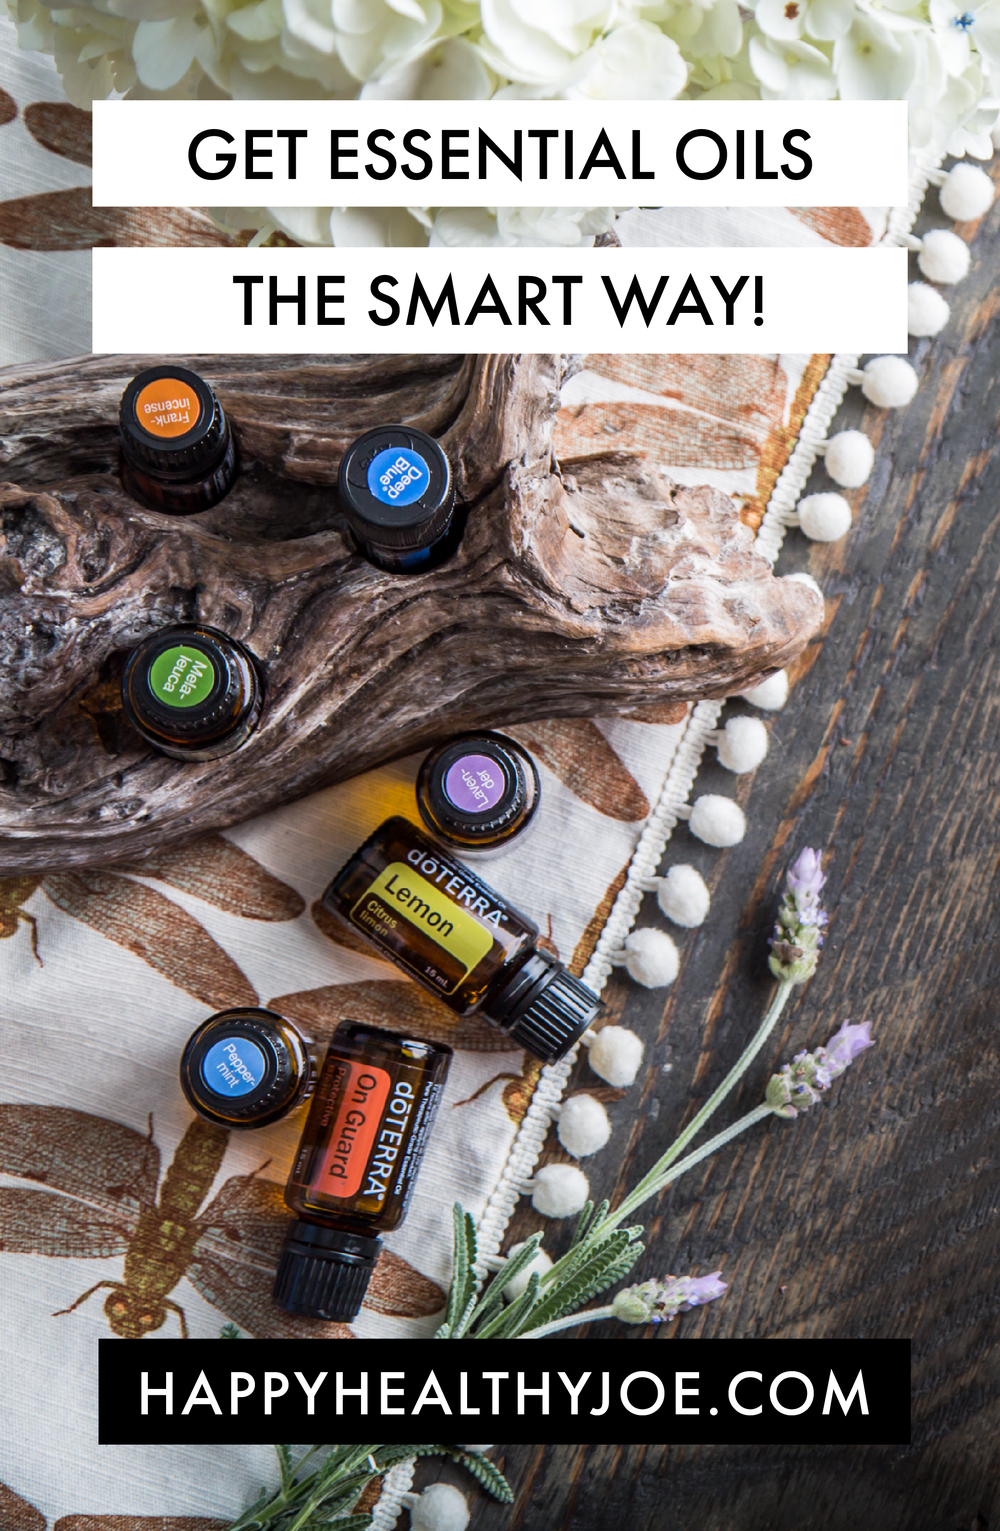 Get Essential Oils - the Smart Way! AKA How I Got Started With dōTERRA Essential Oils And You Should, Too